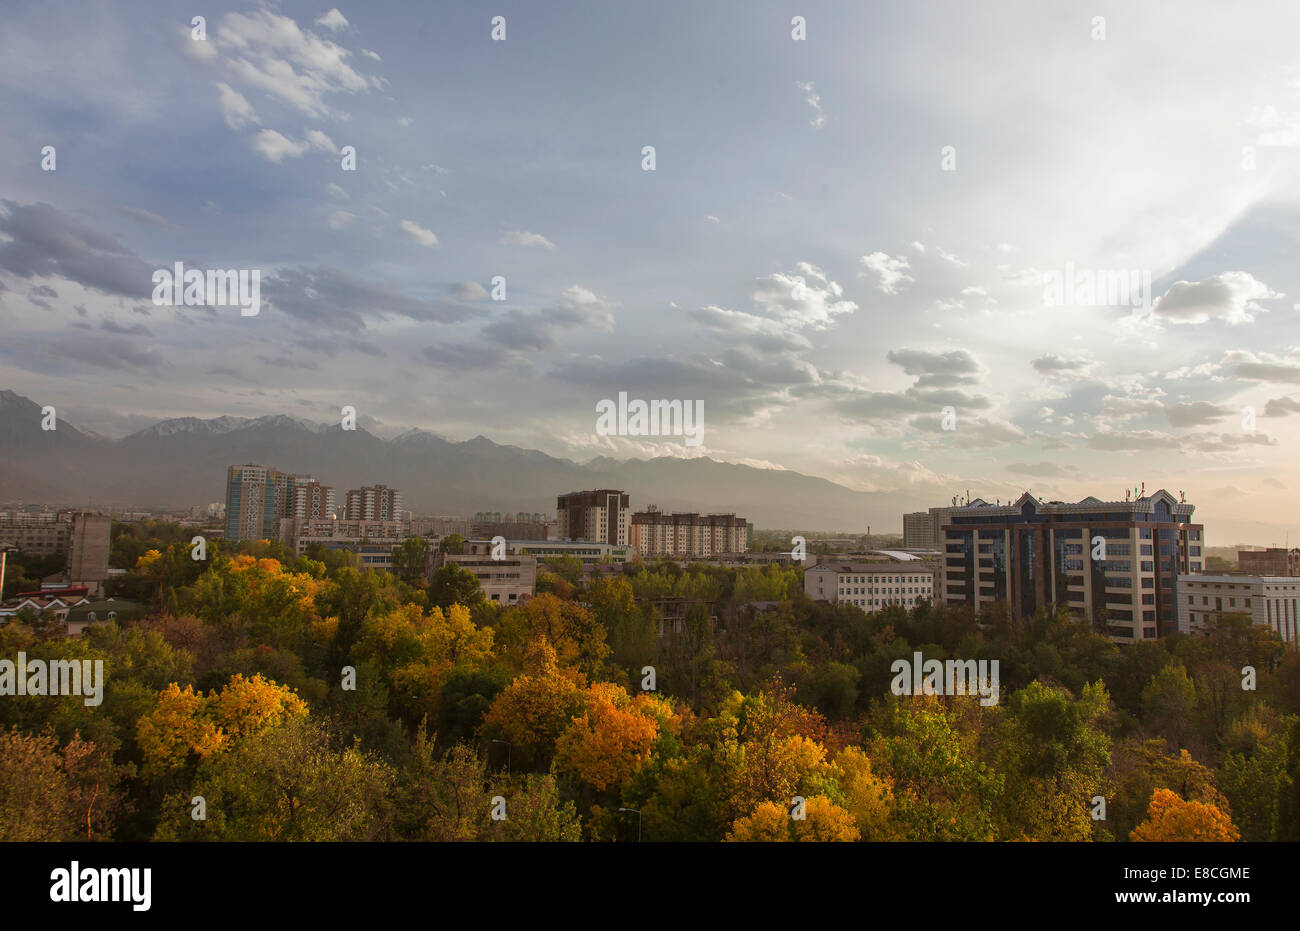 View of the city from the window, autumn, yellow leaves - Stock Image